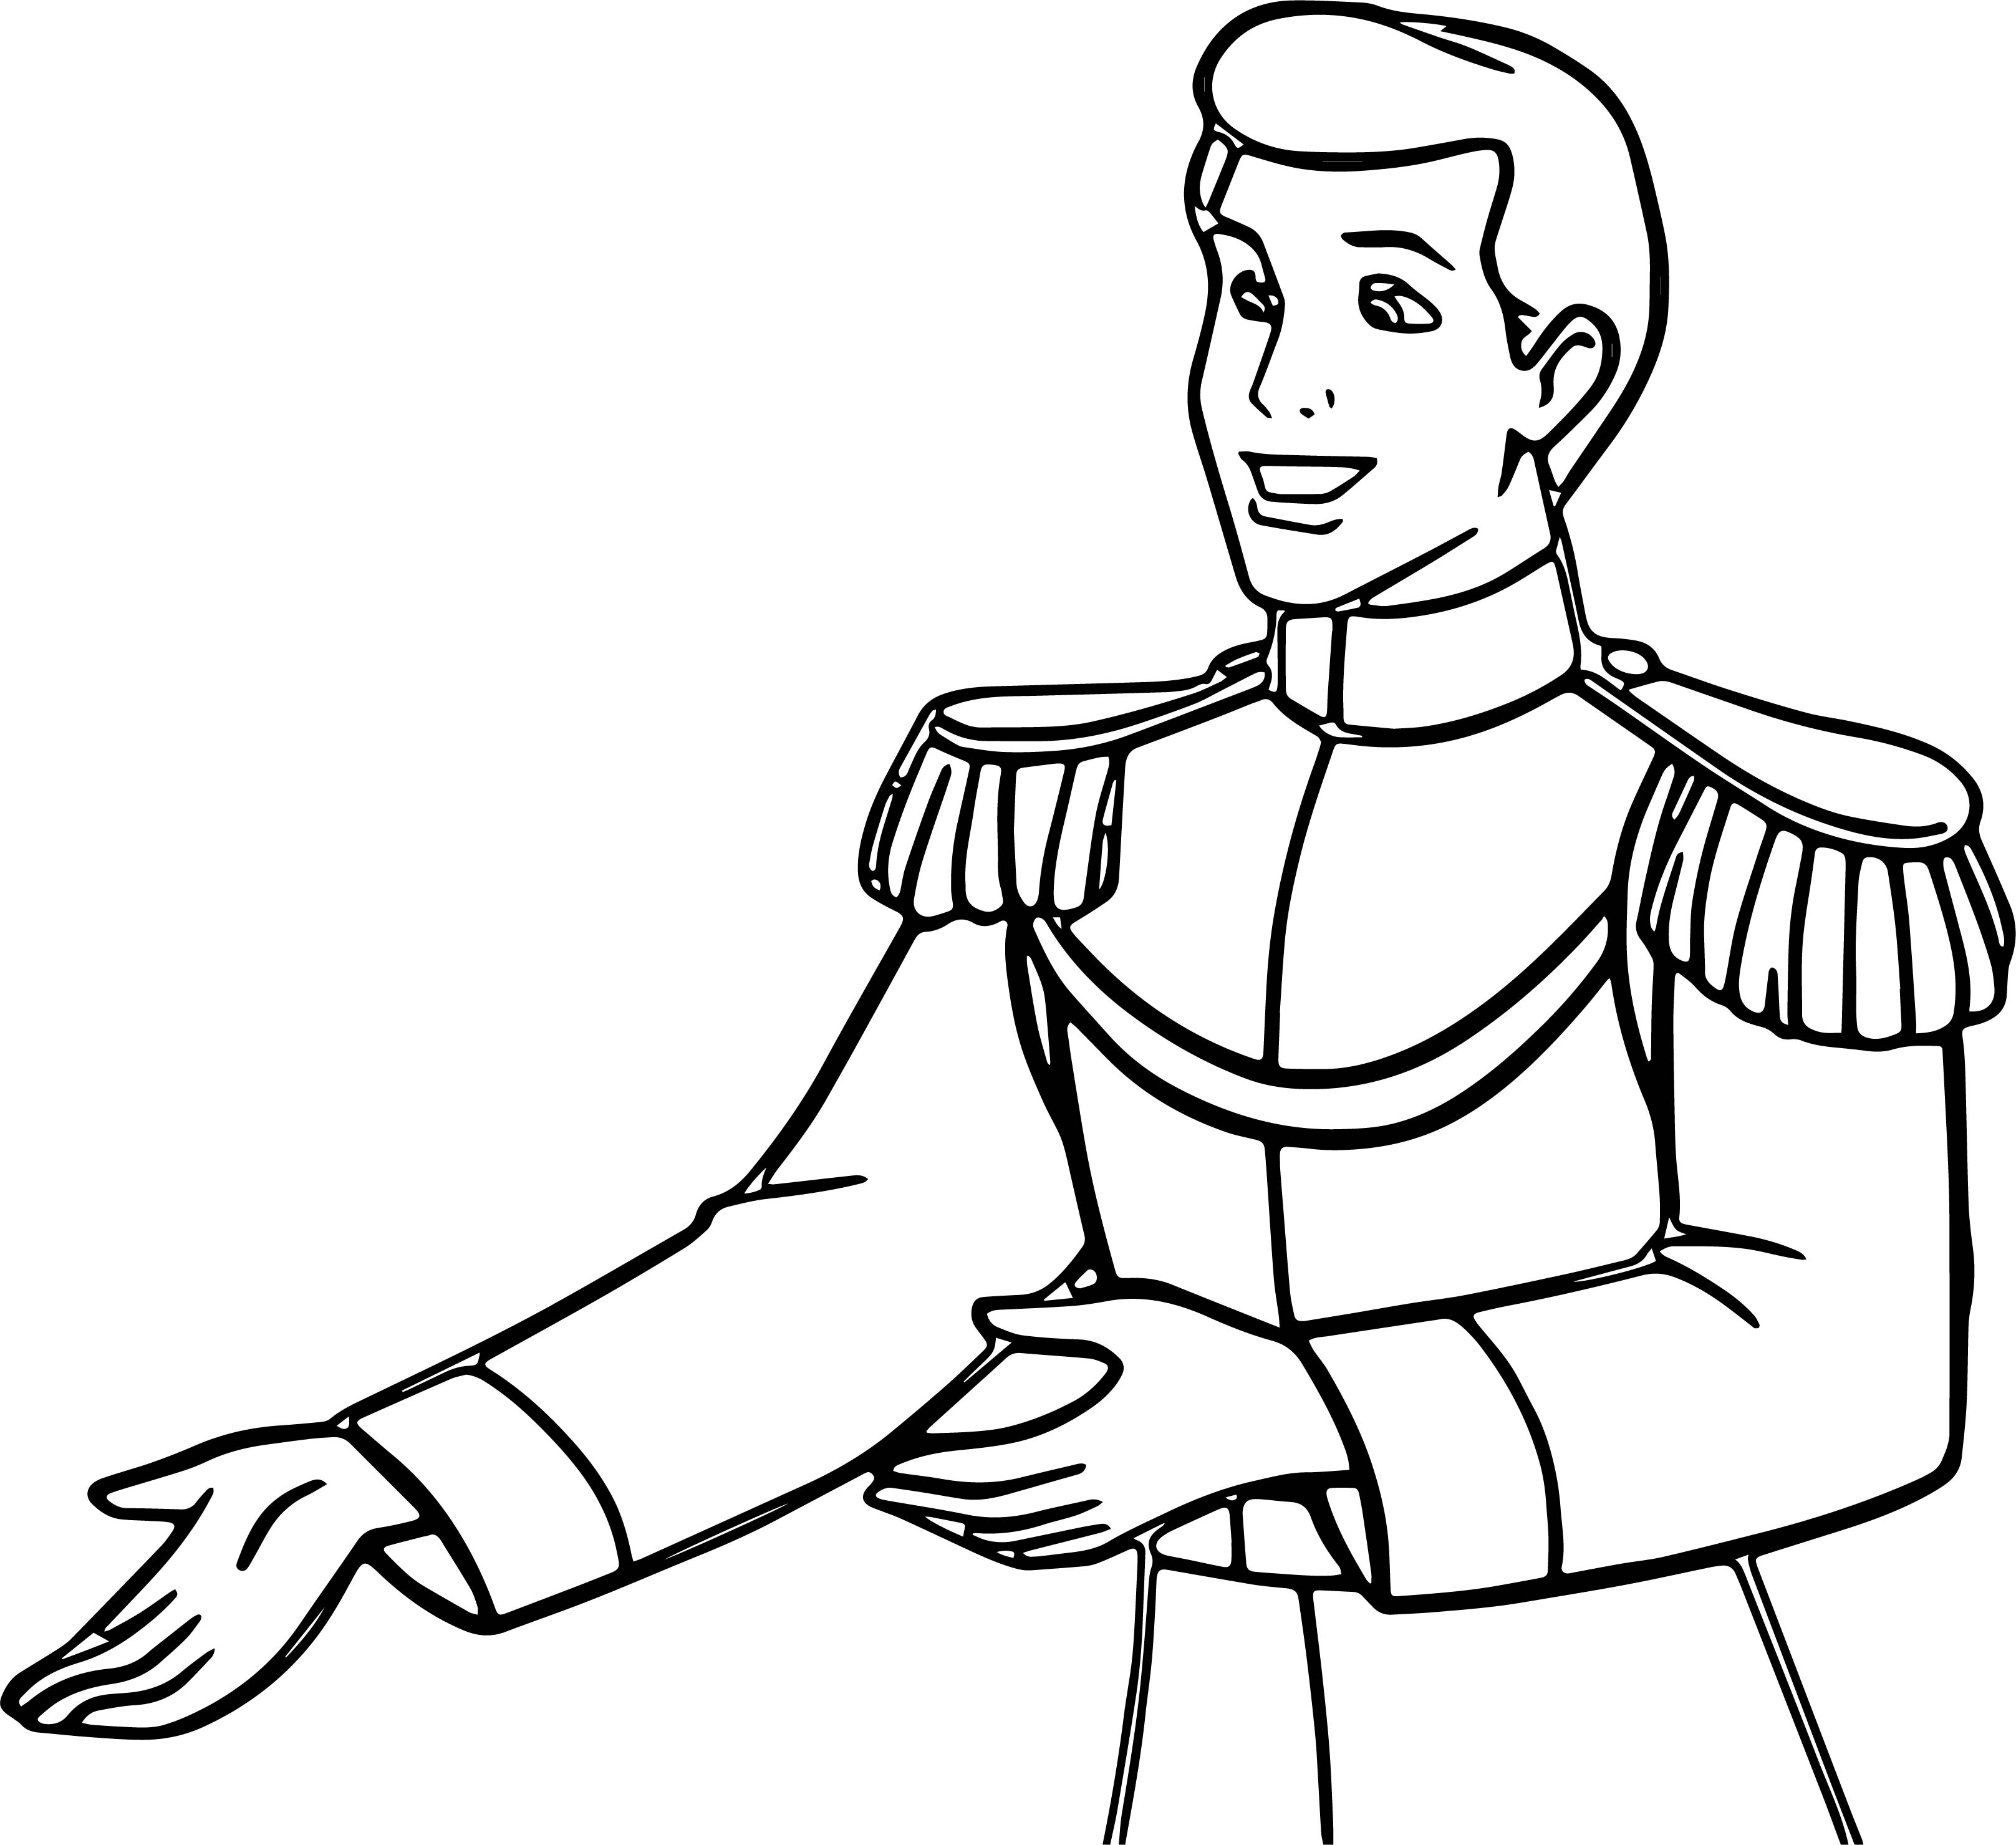 prince charming cinderella coloring pages - photo#34